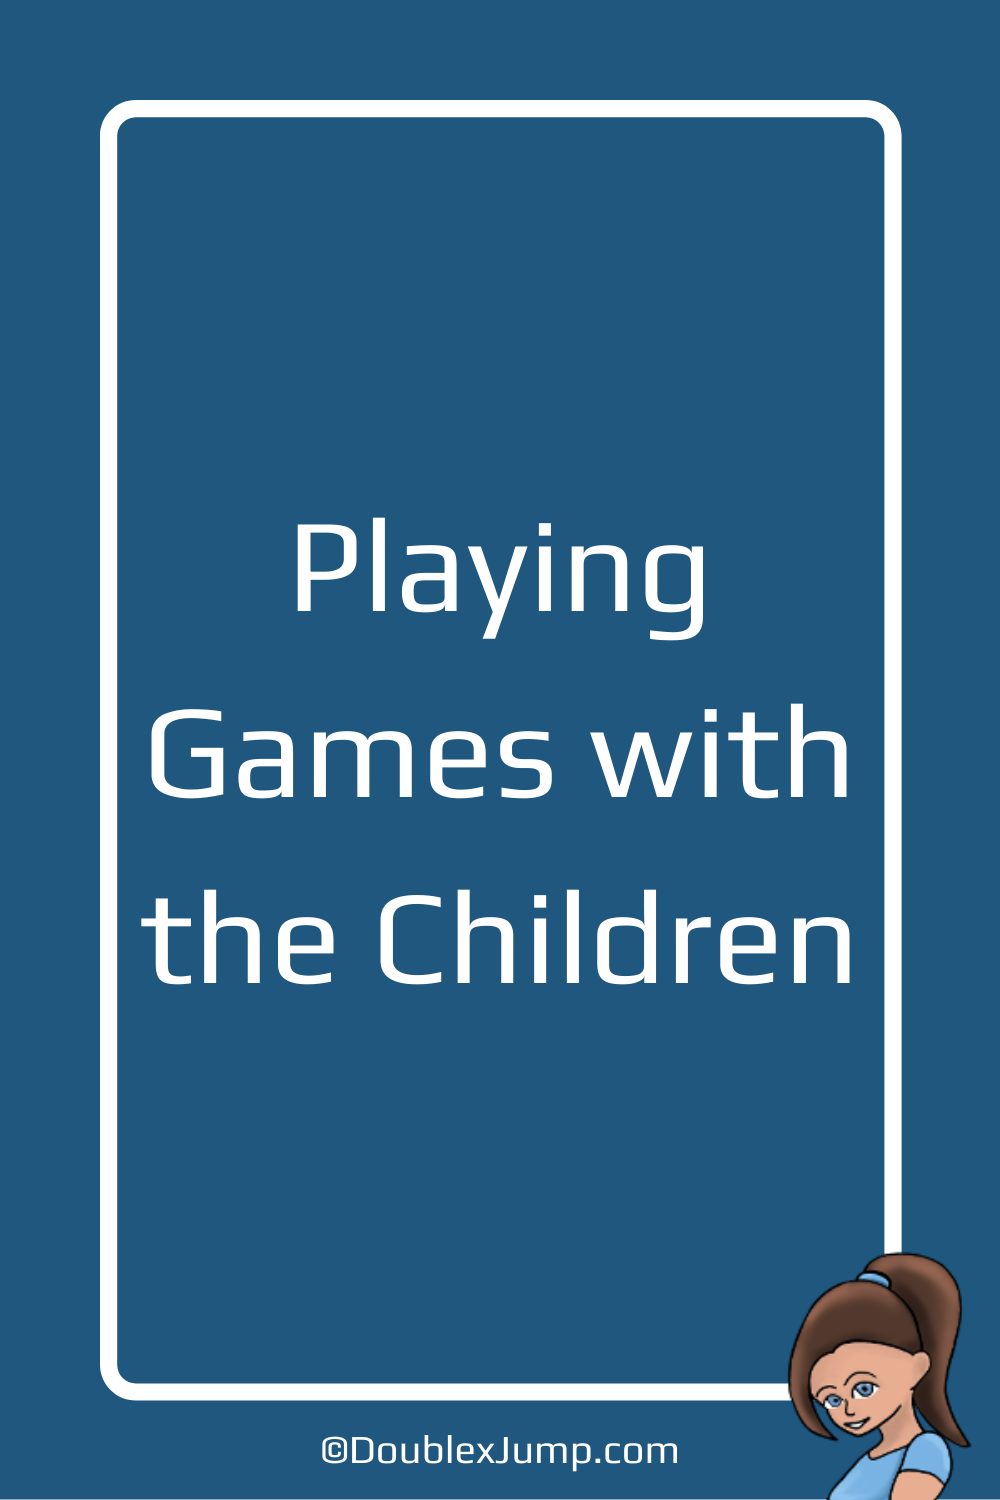 Playing Games with the Children | Video Games | Gaming | Game Blog | DoublexJump.com